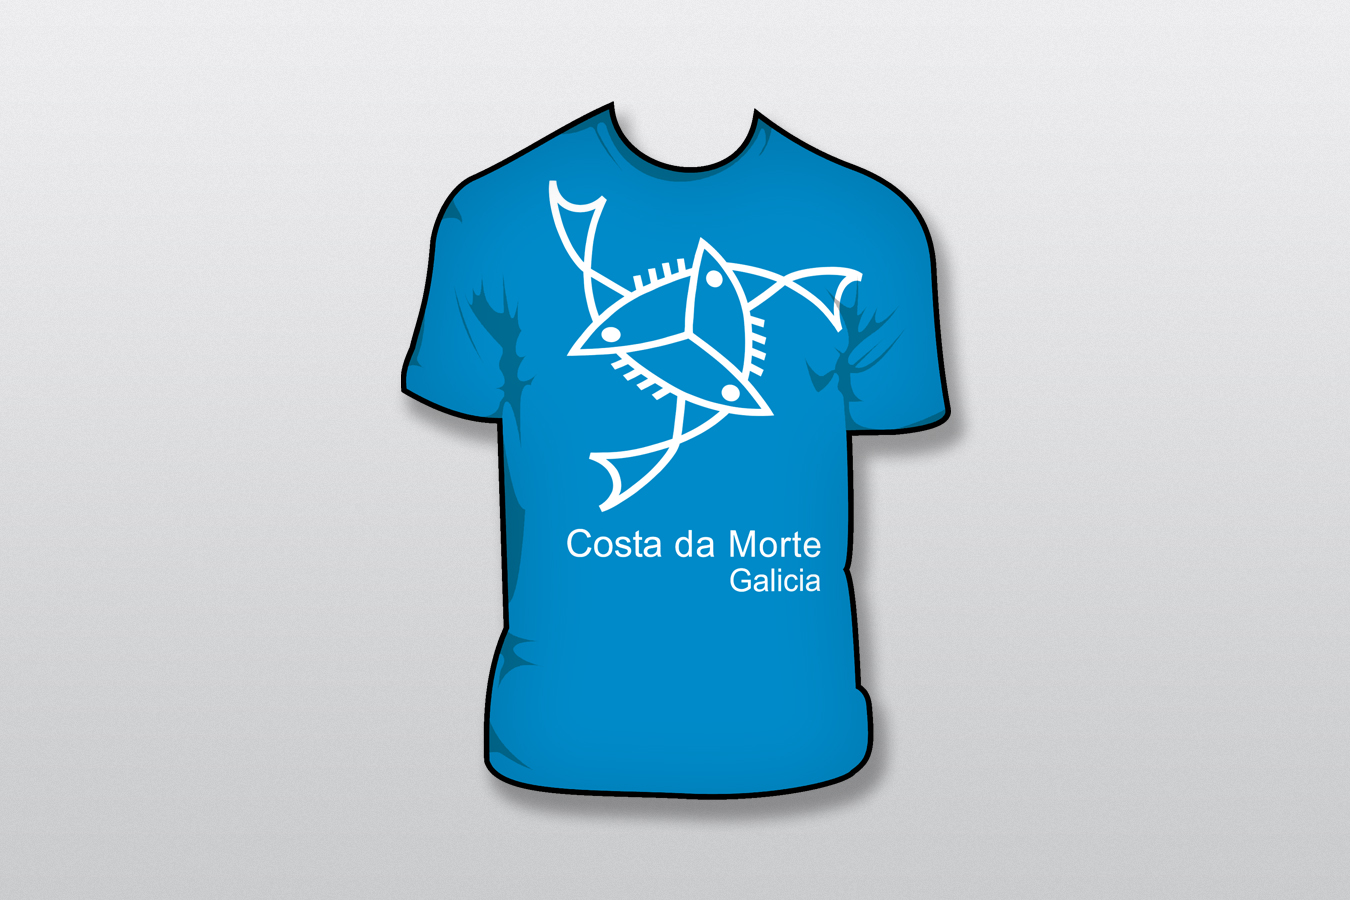 COSTA DA MORTE Un mar de vida - camiseta